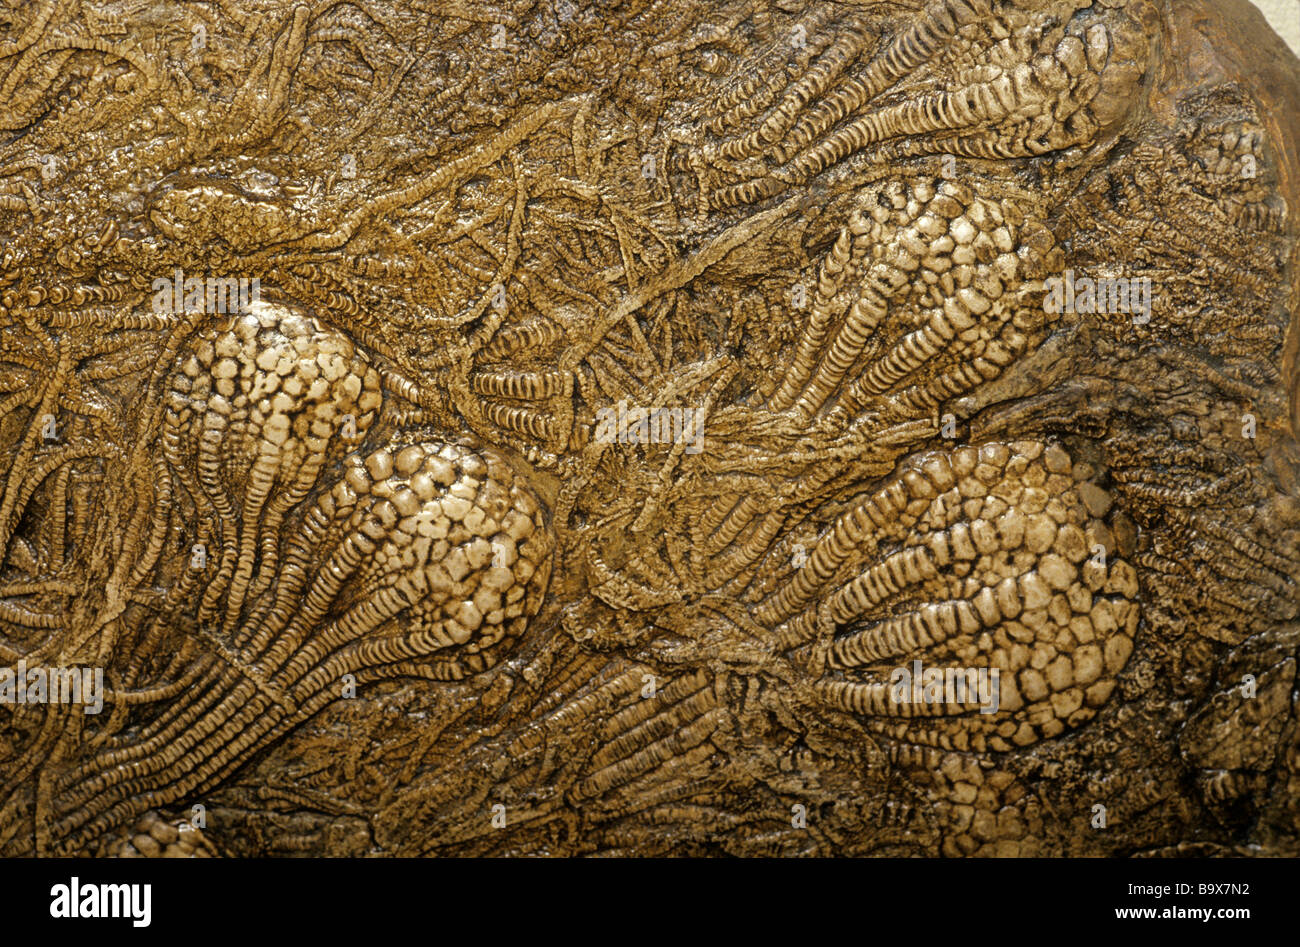 Fossil Crinoids from the Late Cretaceous Period Niobrara Formation Kansas - Stock Image